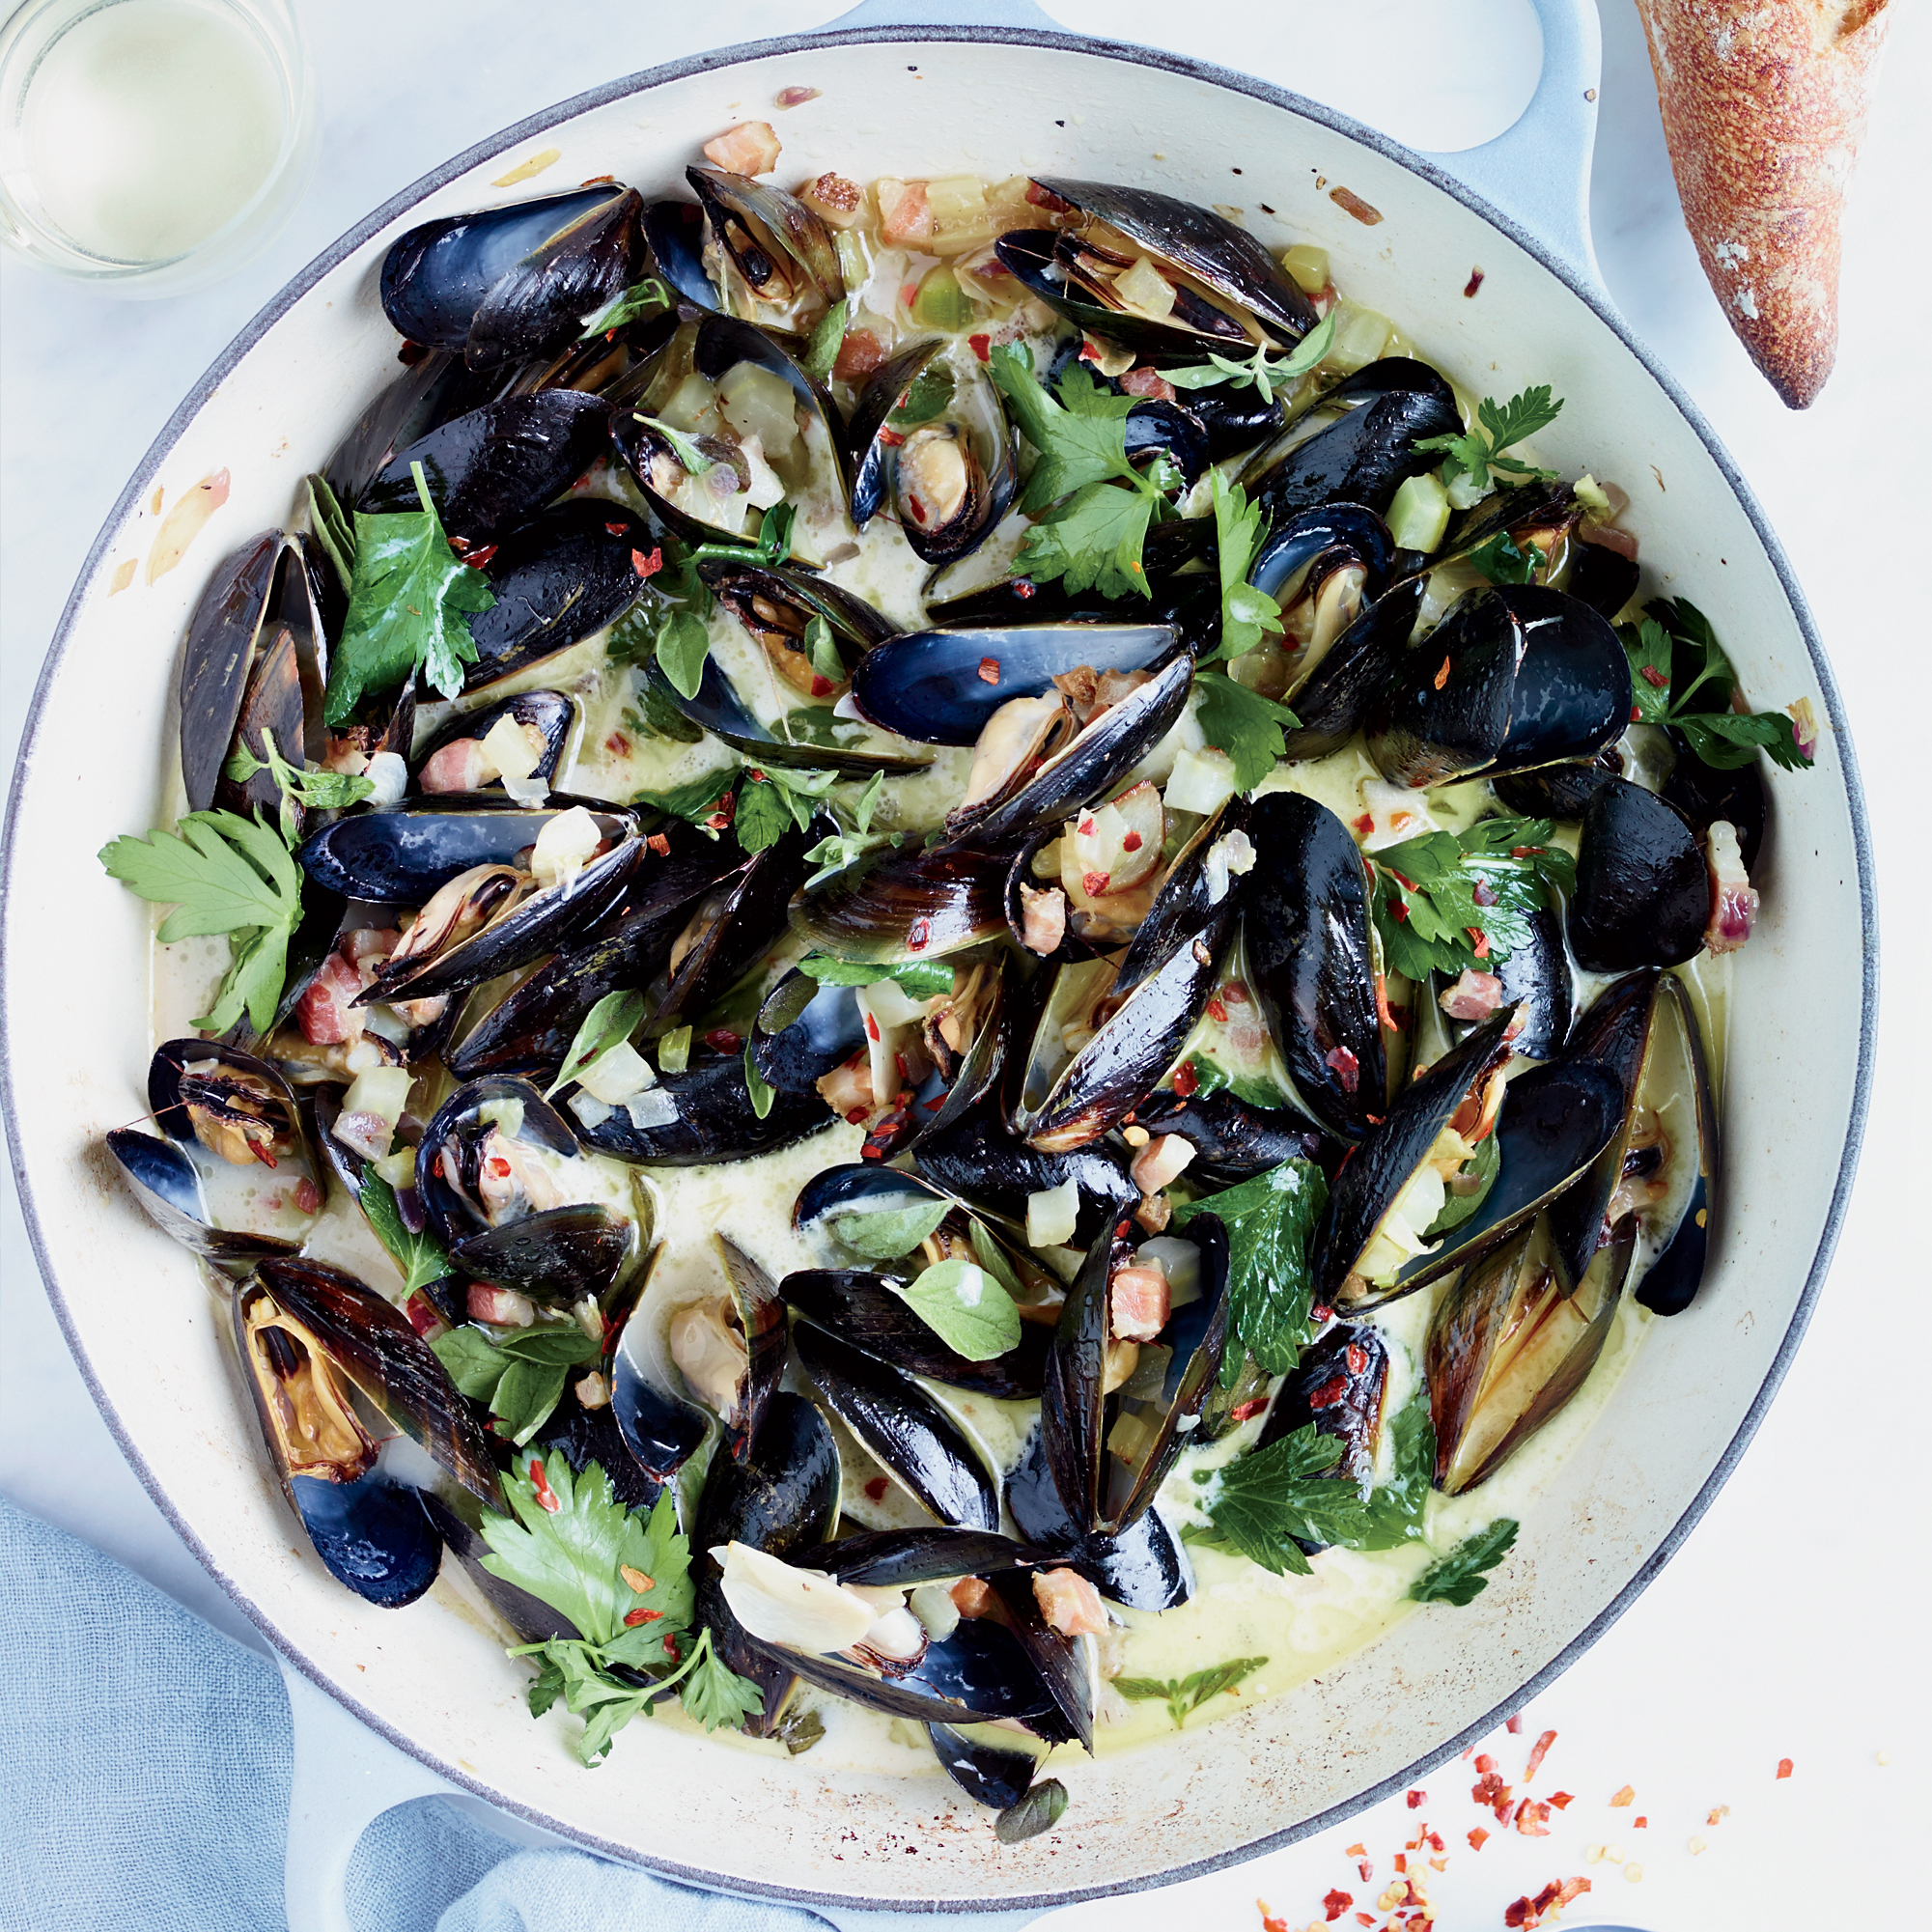 201409-r-mussels-with-pancetta-and-creme-fraiche.jpg